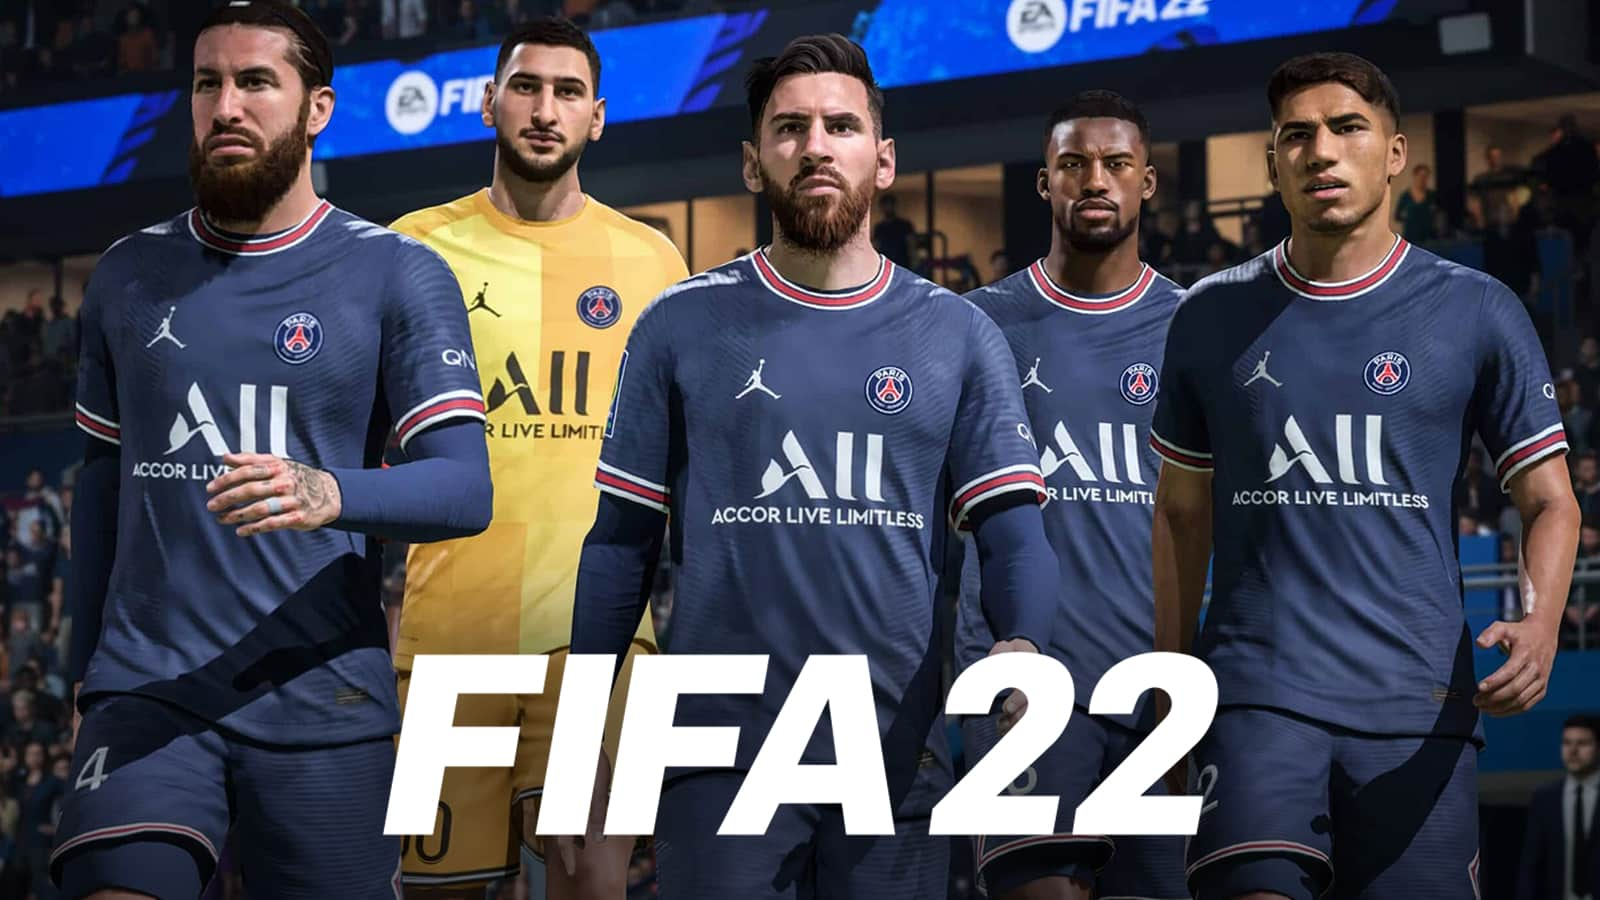 Download FIFA 22 Apk Mod Messi to PSG Android